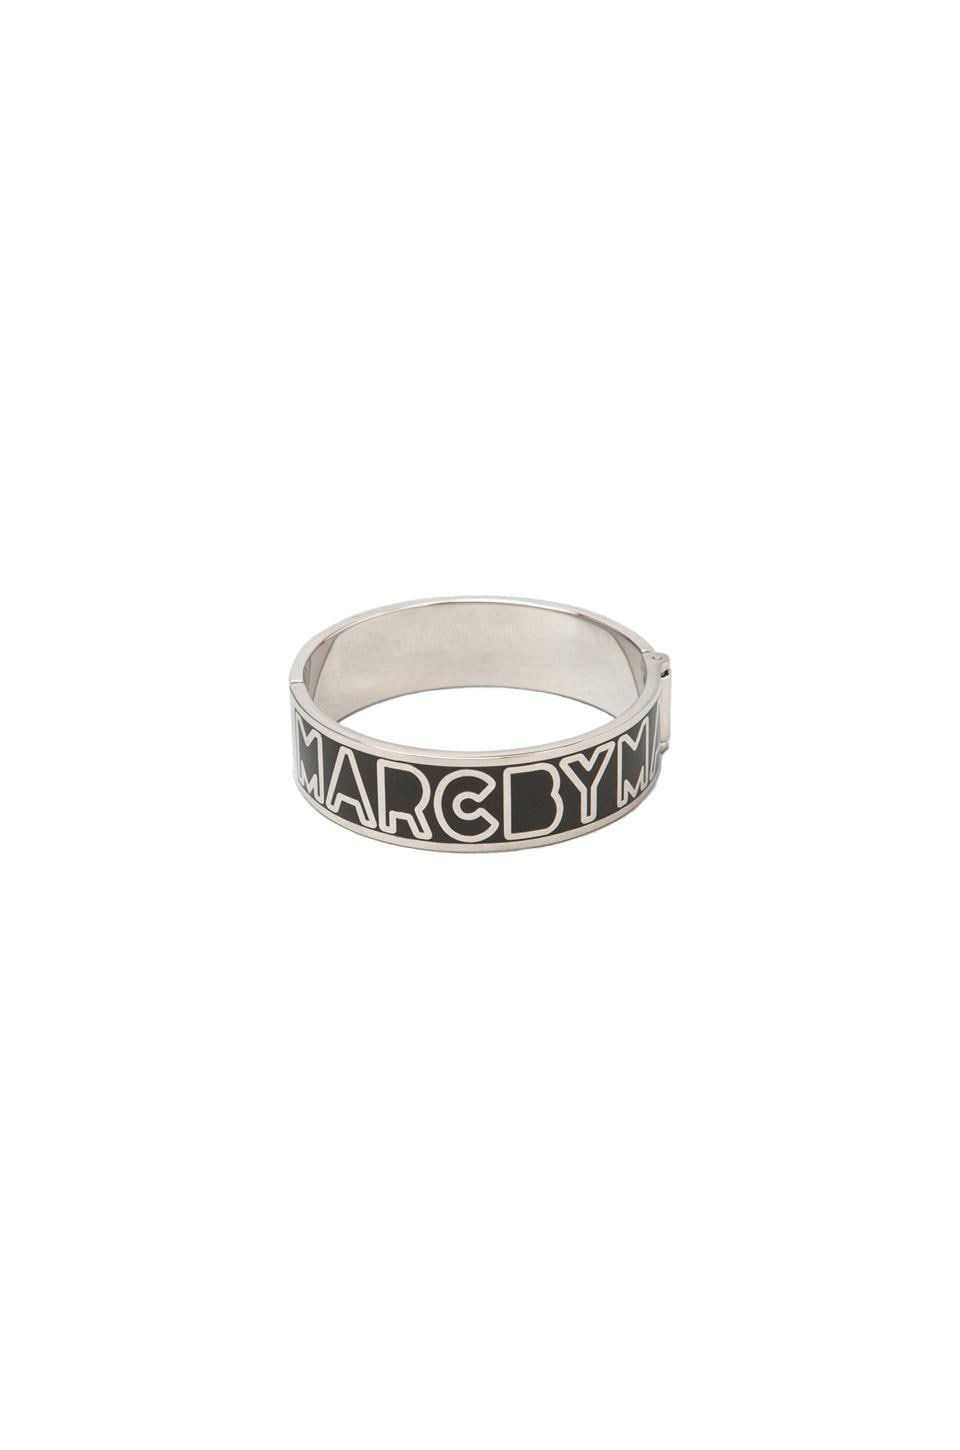 Marc by Marc Jacobs Hinge Bangle in Black Argento